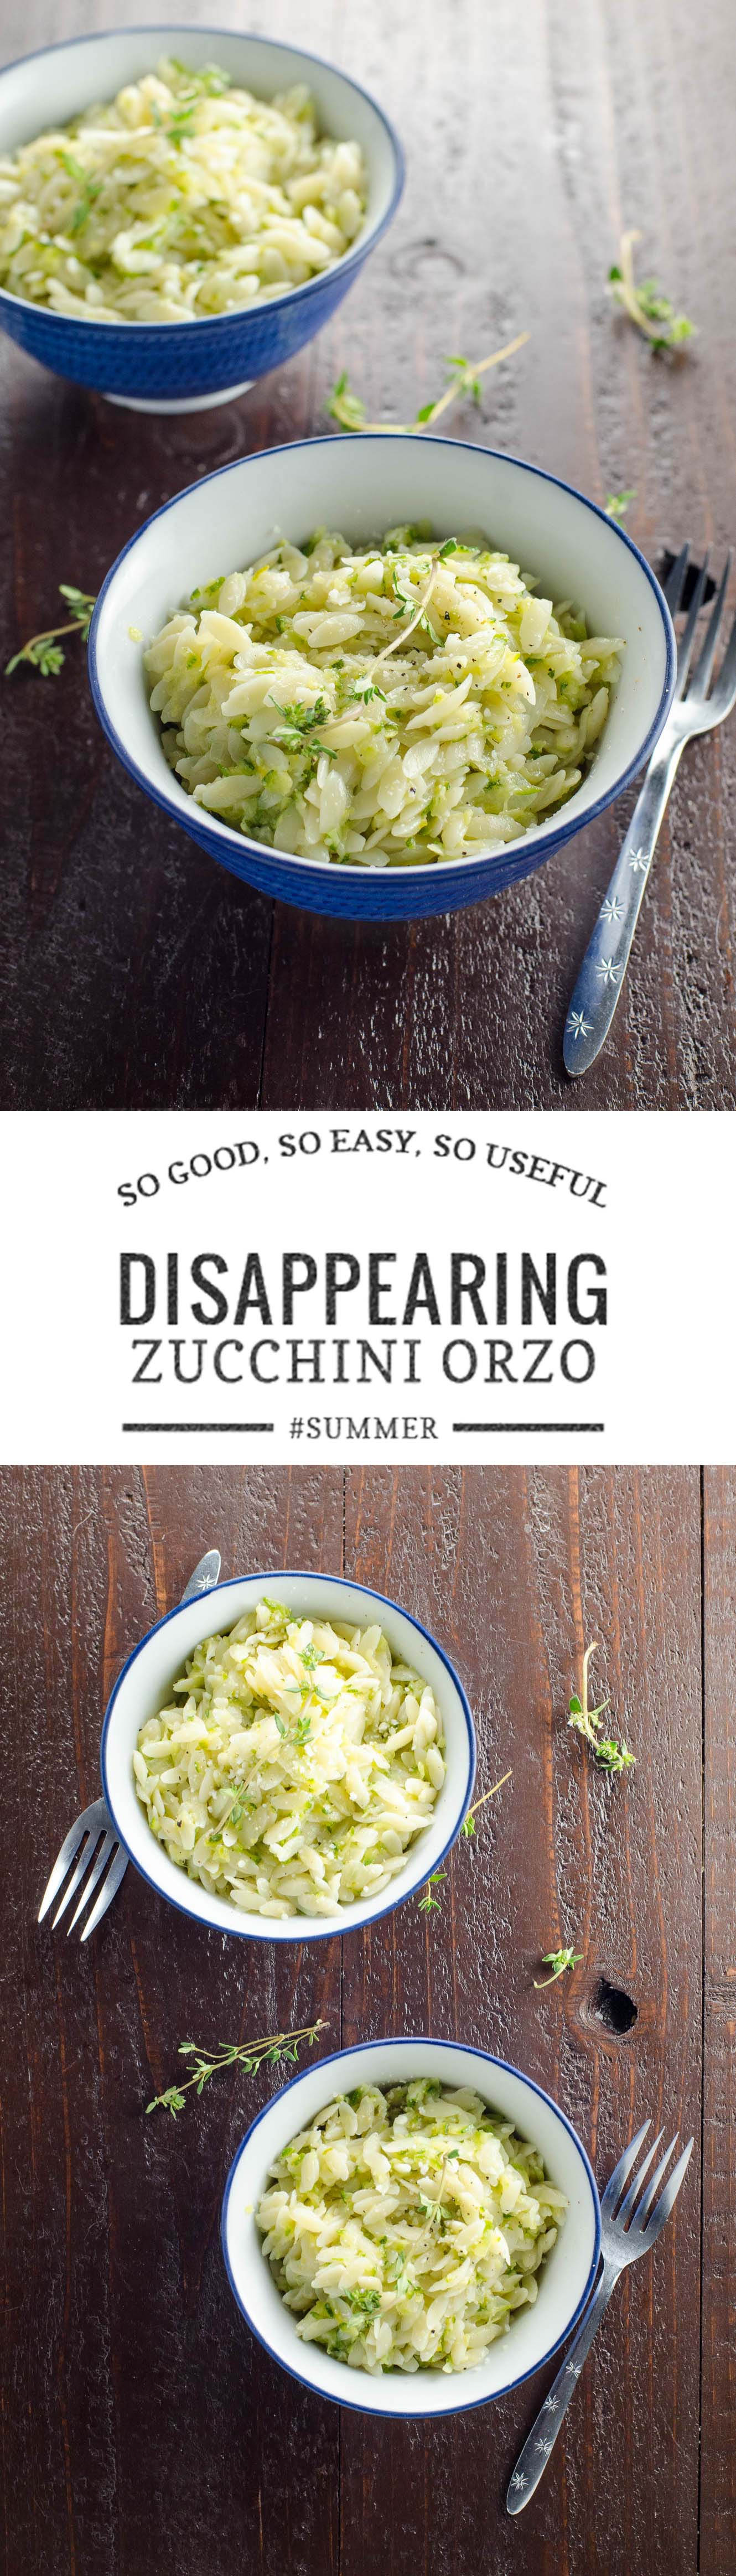 Camille Kingsolver's Disappearing Zucchini Orzo, adapted from Barbara Kingsolver's Animal, Vegetable Miracle, is a crowd-pleasing way to use up tons of zucchini in a flash.